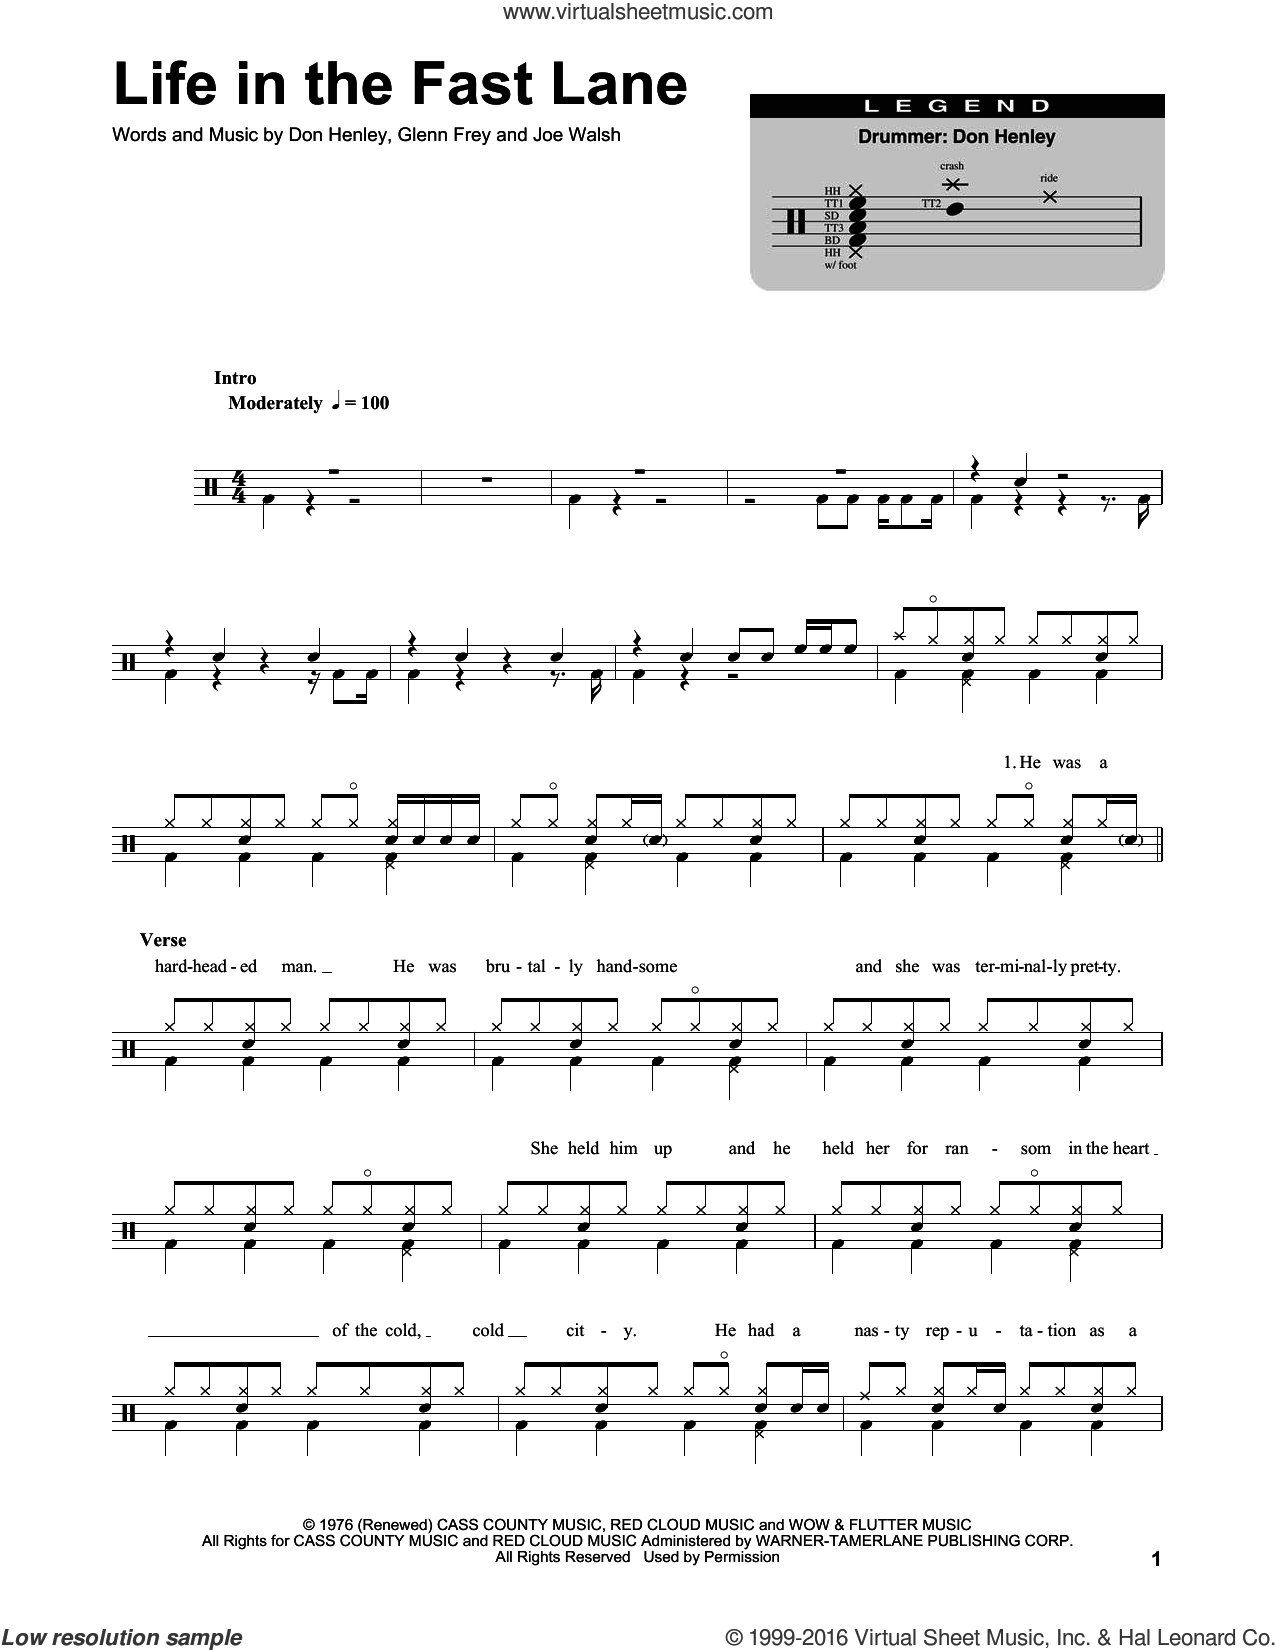 Life In The Fast Lane sheet music for drums by Eagles, The Eagles, Don Henley, Glenn Frey and Joe Walsh. Score Image Preview.